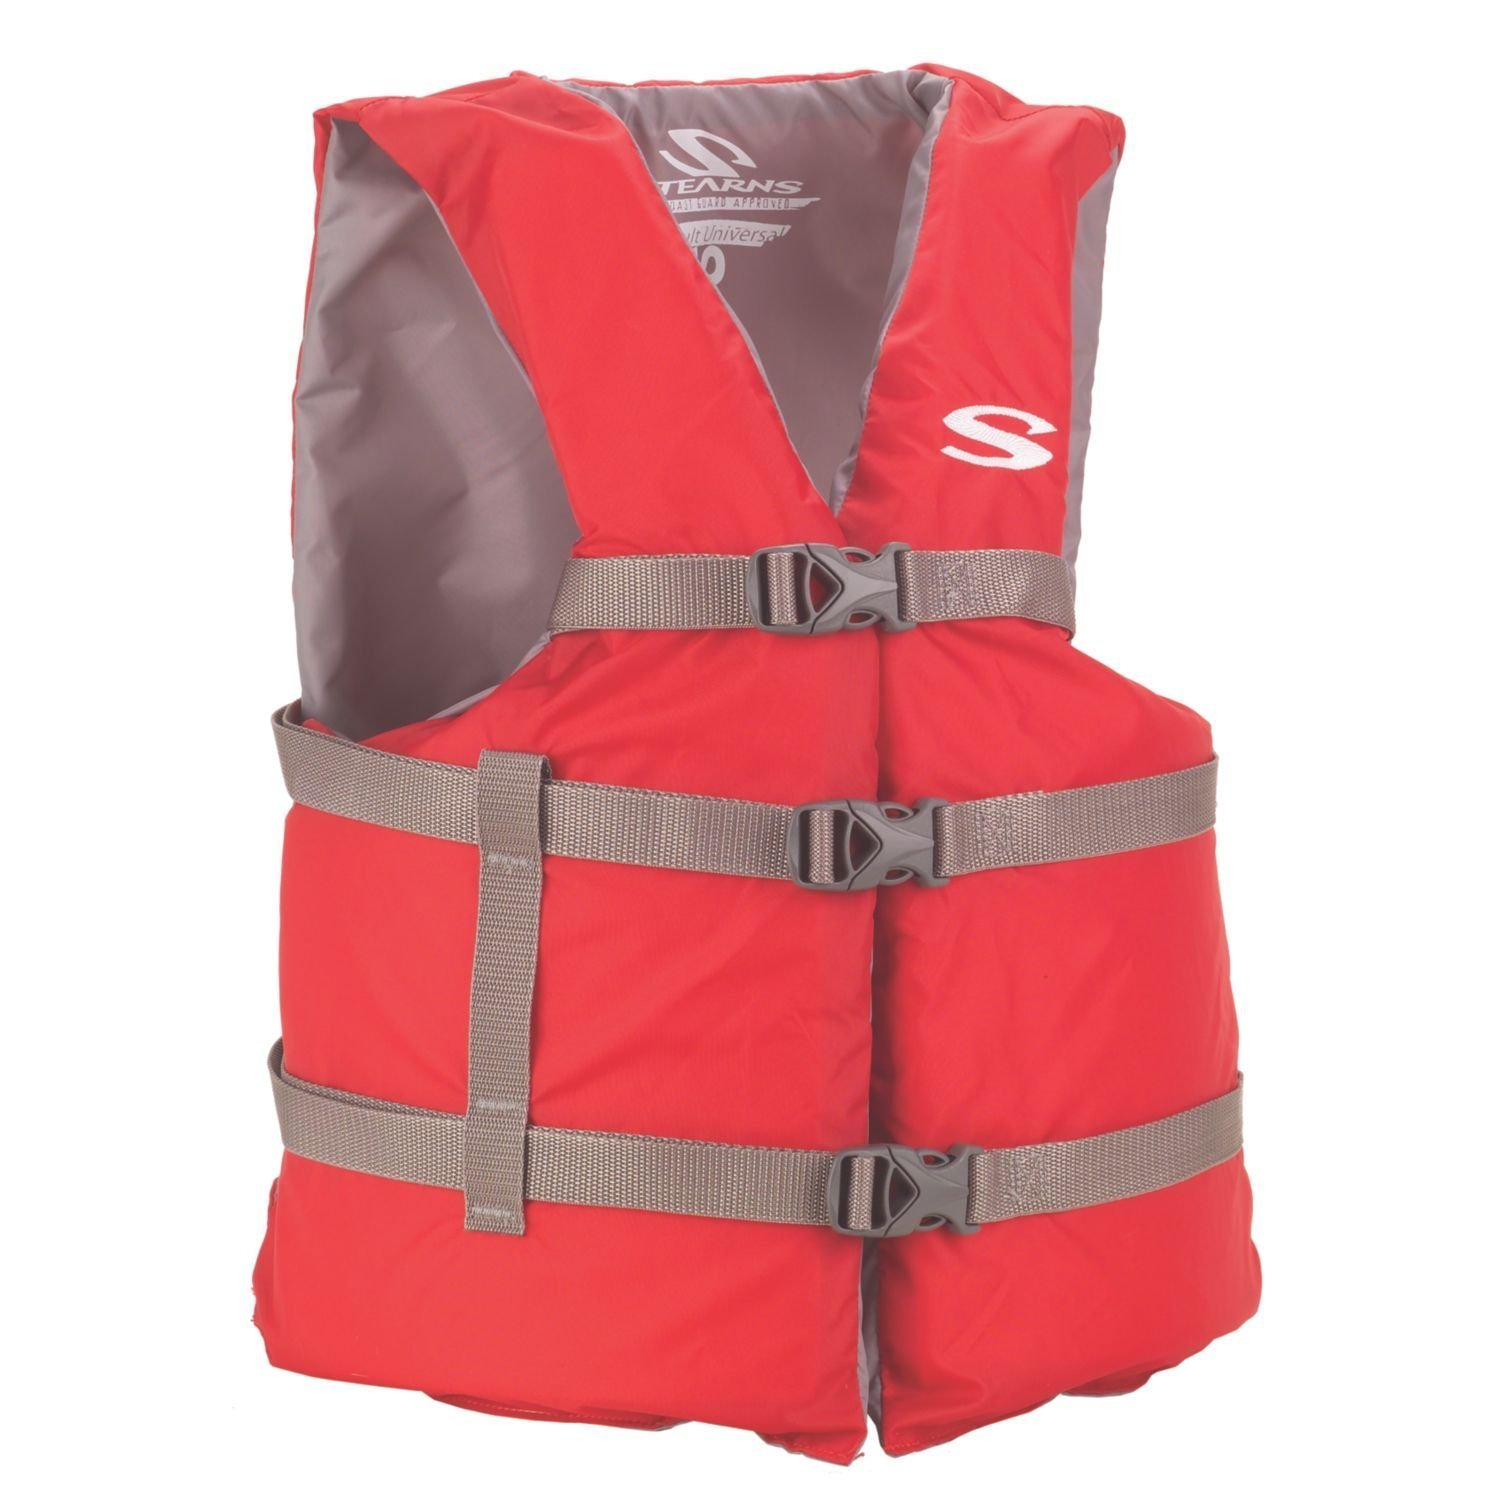 Stearns Adult Classic Series Vest,  3000001413, Red, Oversized